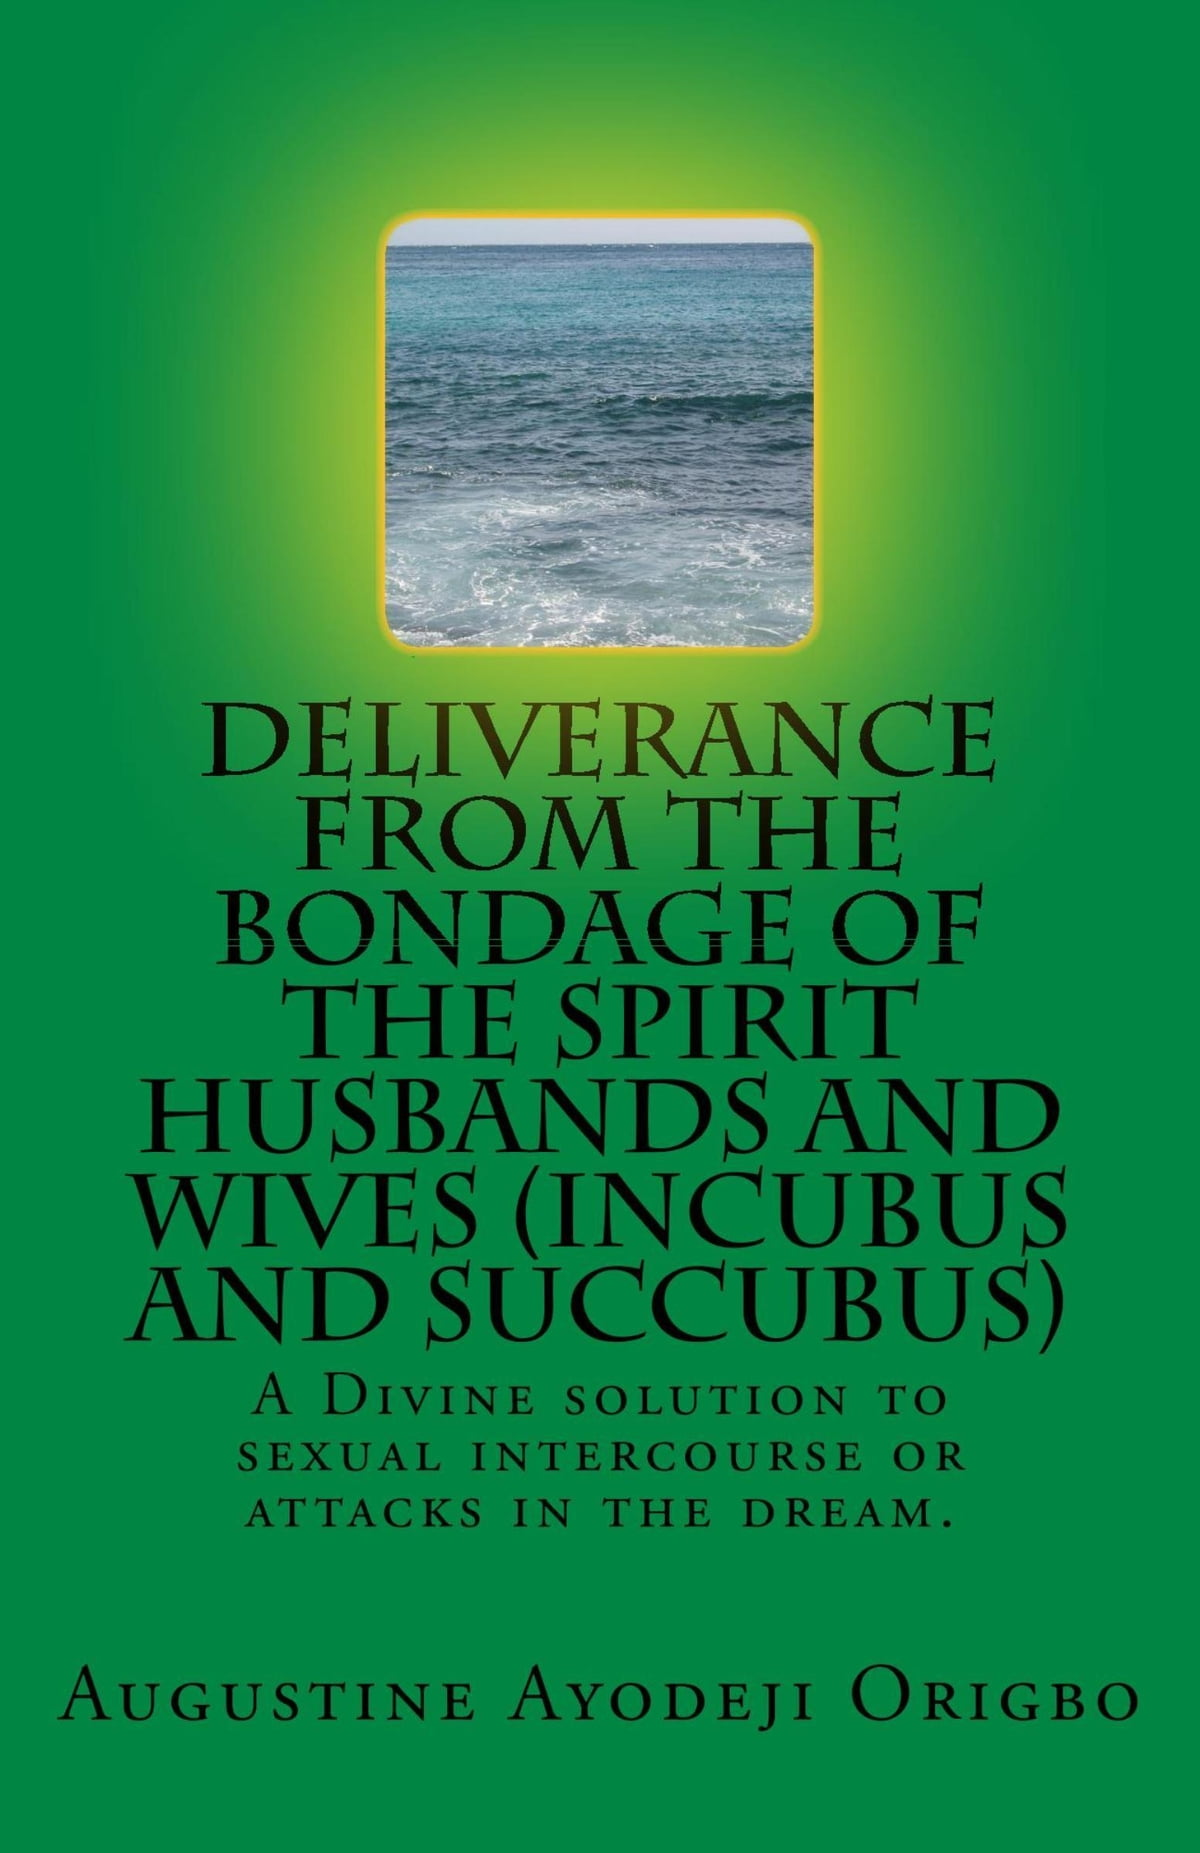 Deliverance From The Bondage Of The Spirit Husbands And Wives (Incubus And  Succubus) A Divine solution to sexual intercourse or attacks in the dream